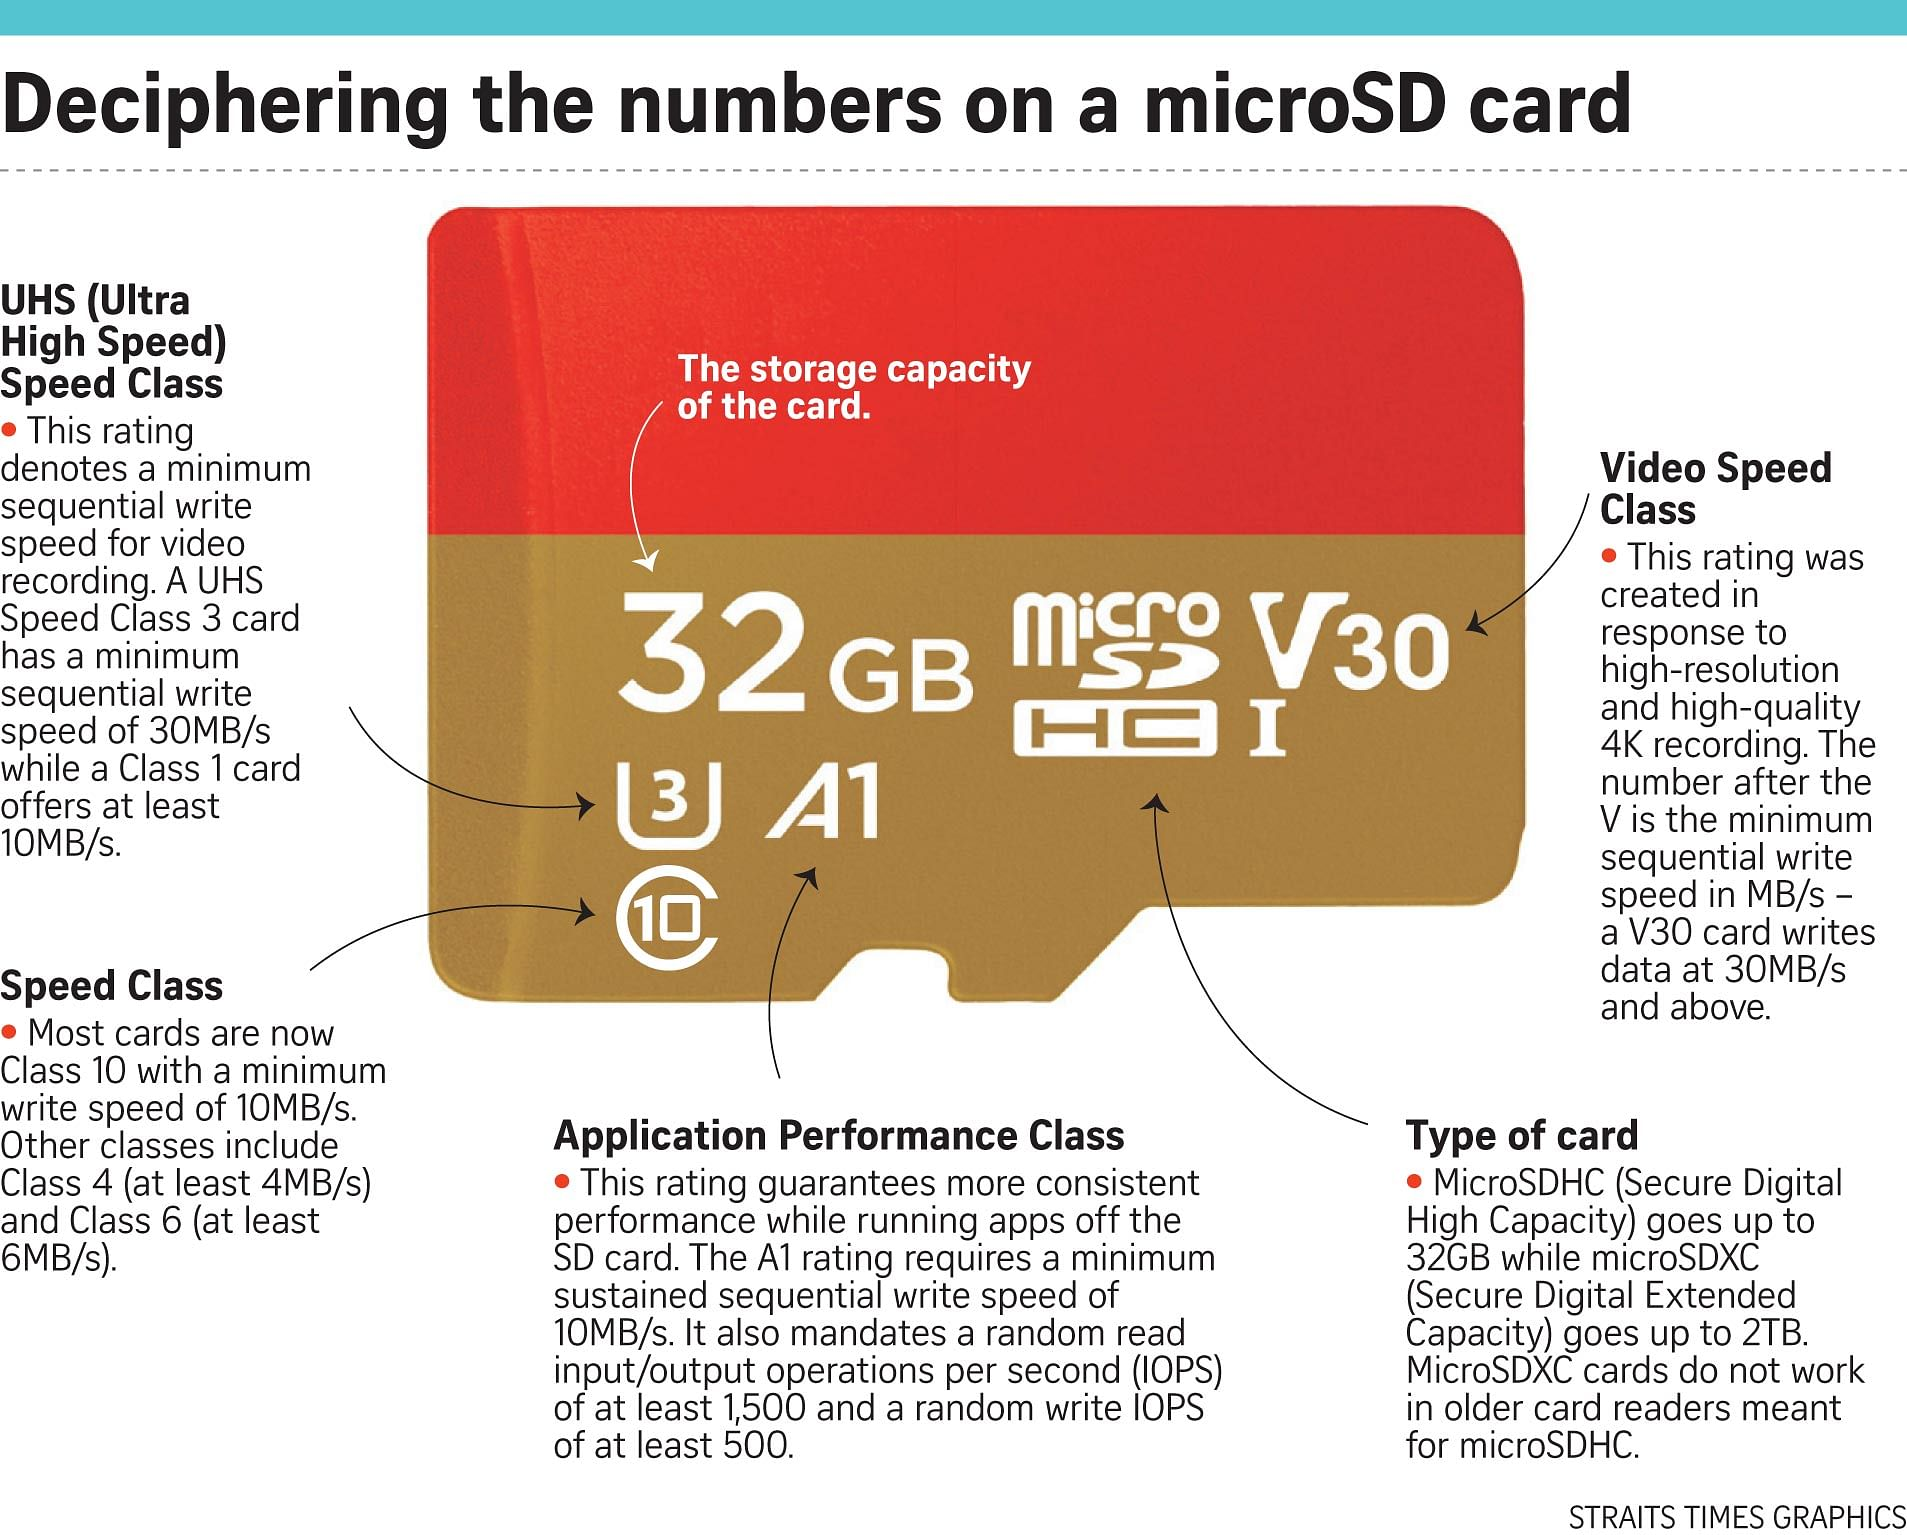 A1 memory cards best fit for mobile devices, Smartphones